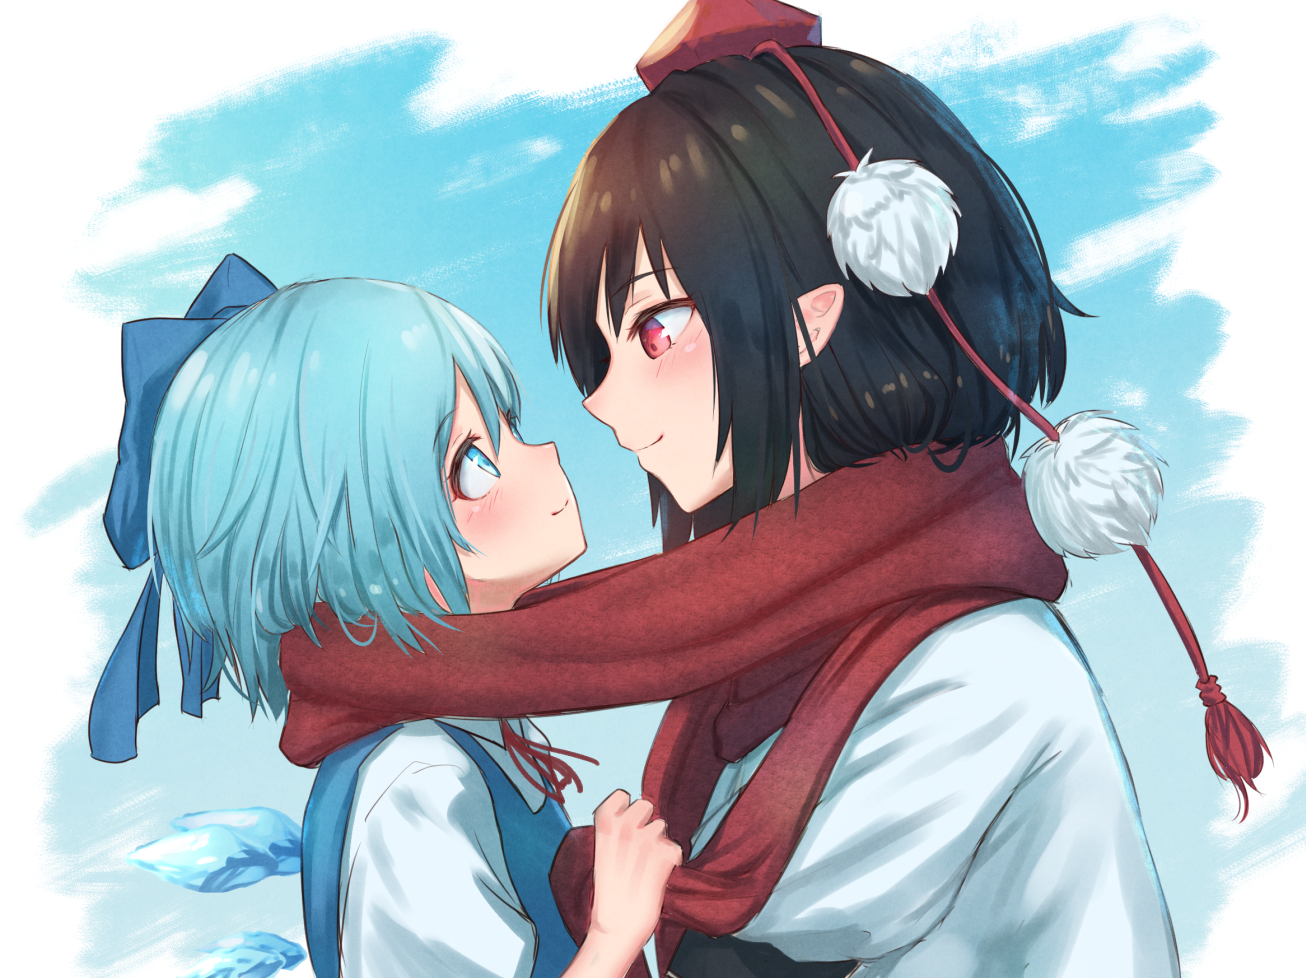 2girls aqua_eyes aqua_hair black_hair blush bow cirno fairy hat loli pointed_ears red_eyes roke_(taikodon) scarf shameimaru_aya short_hair shoujo_ai touhou wings